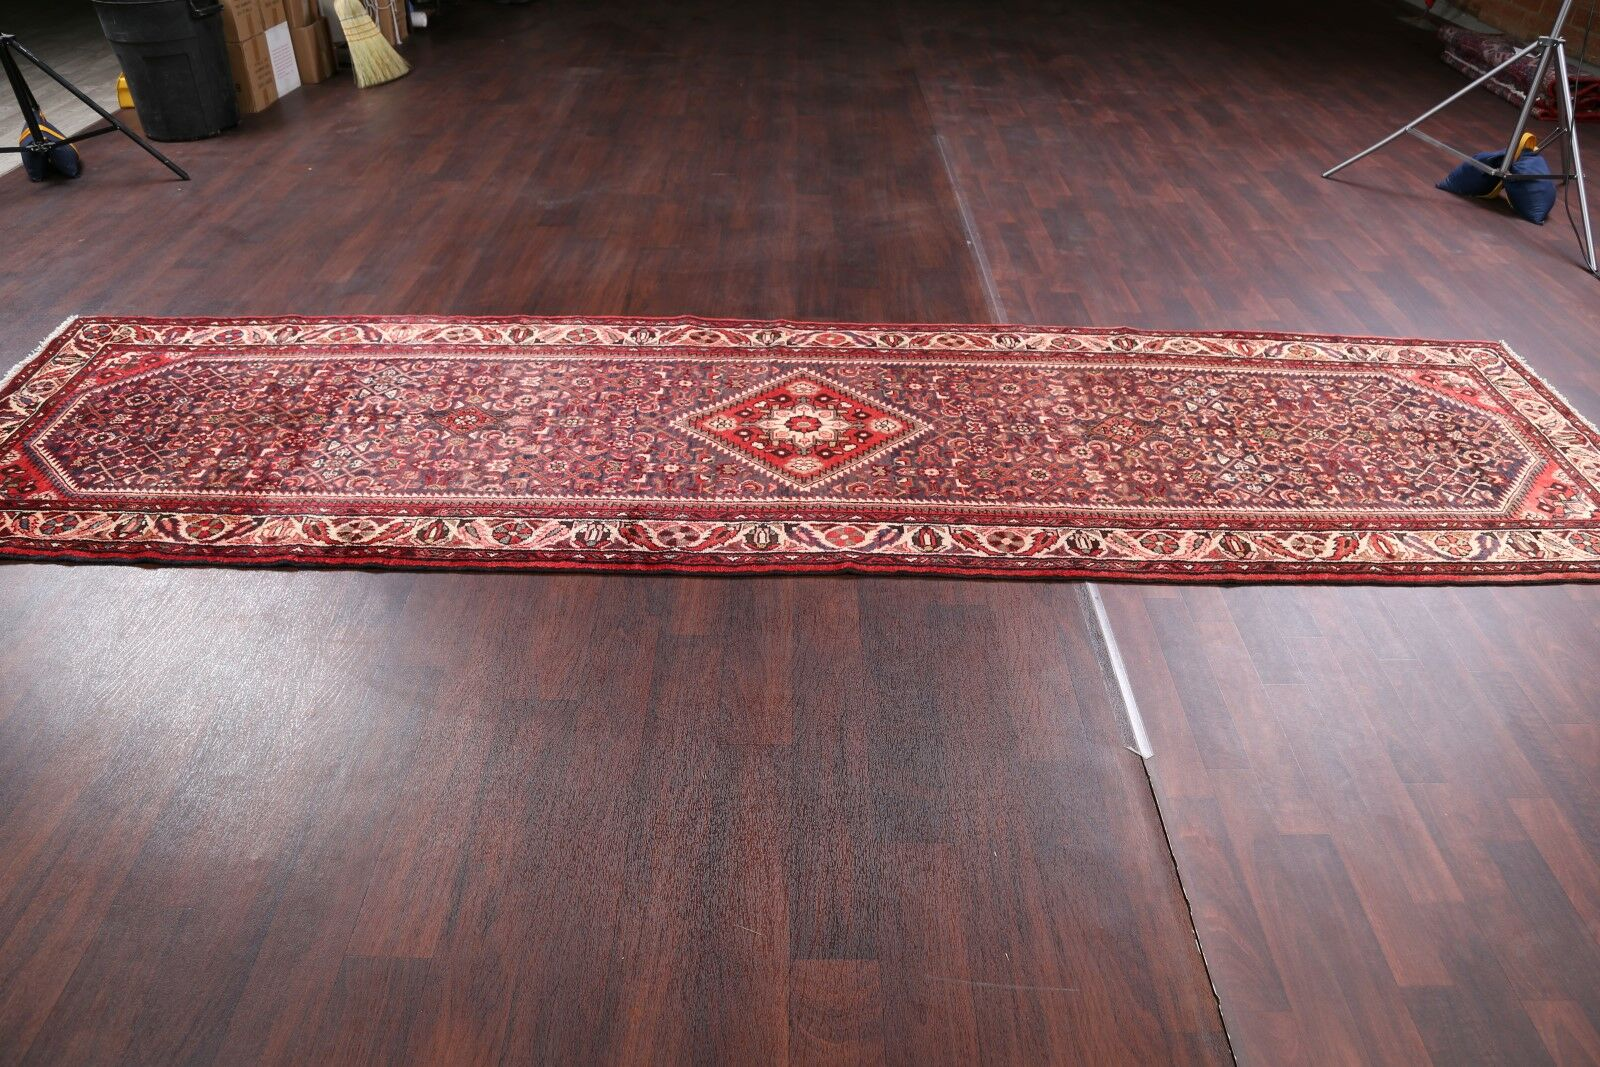 One-of-a-Kind Geometric Hamedan Palace Vintage Persian Hand-Knotted 3'7